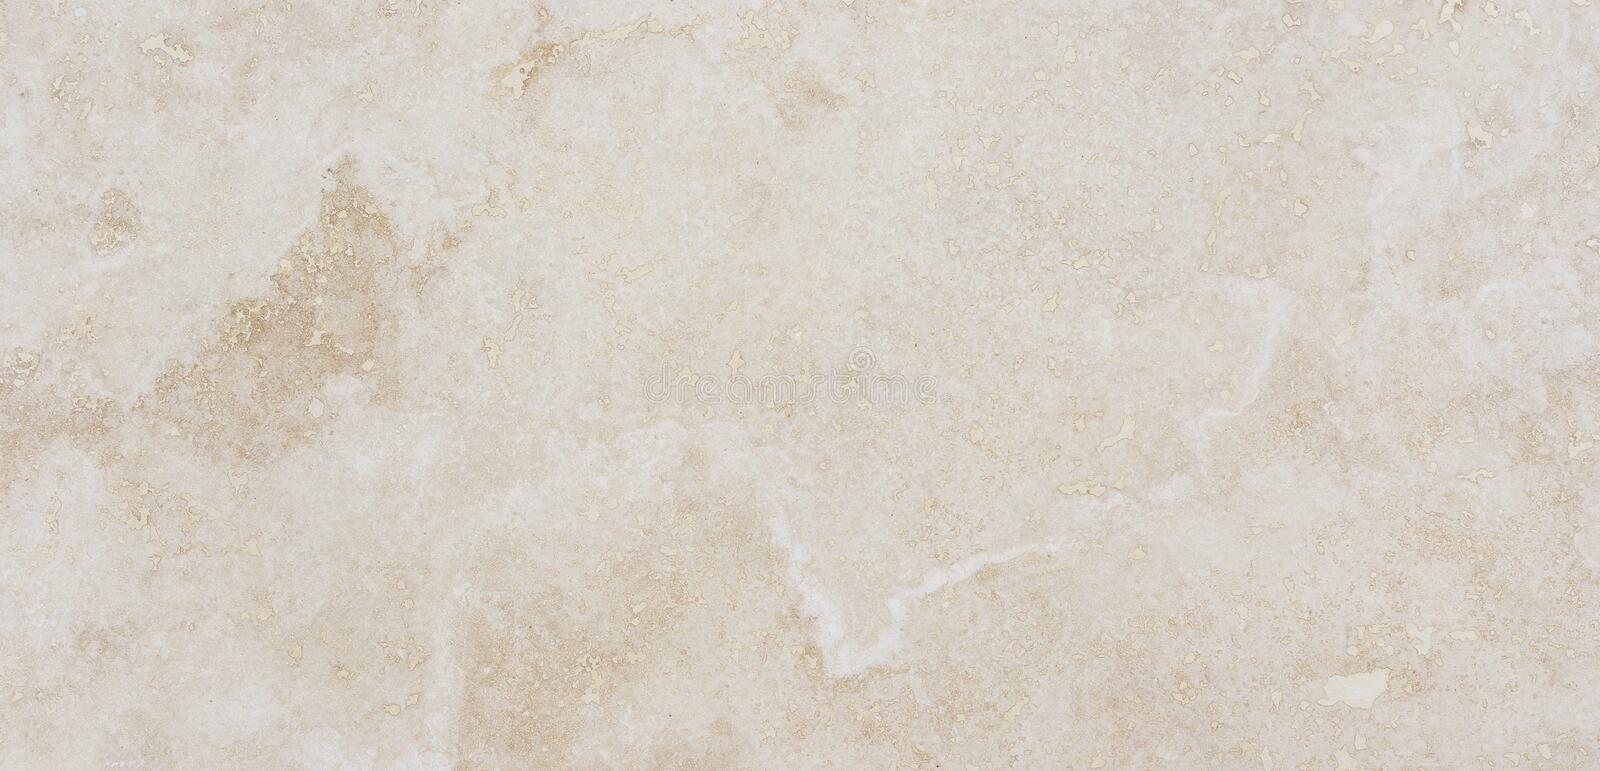 Download Beautiful High Quality Marble Background With Natural Pattern. Stock Photo - Image: 83721795